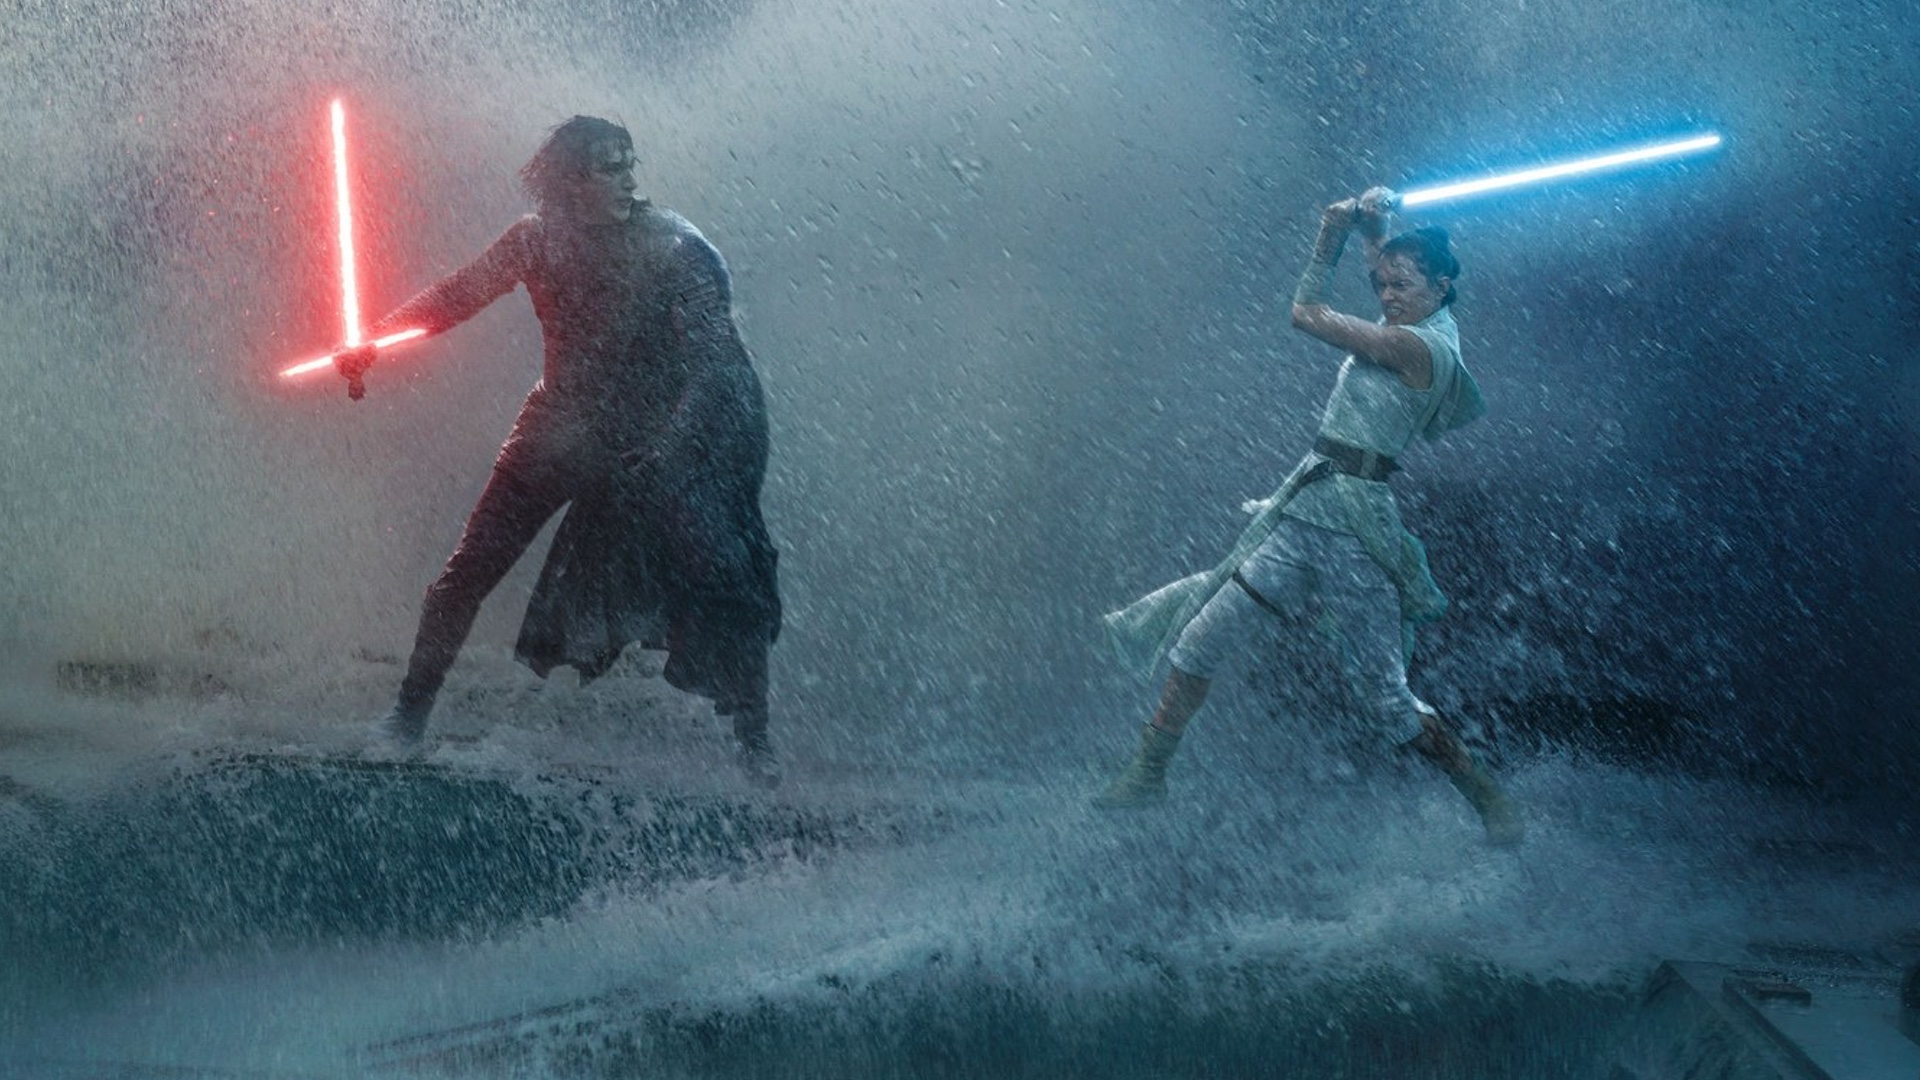 daisy-ridley-teases-an-epic-lightsaber-fight-scene-between-rey-and-kylo-in-star-wars-the-rise-of-skywalker-social.jpg